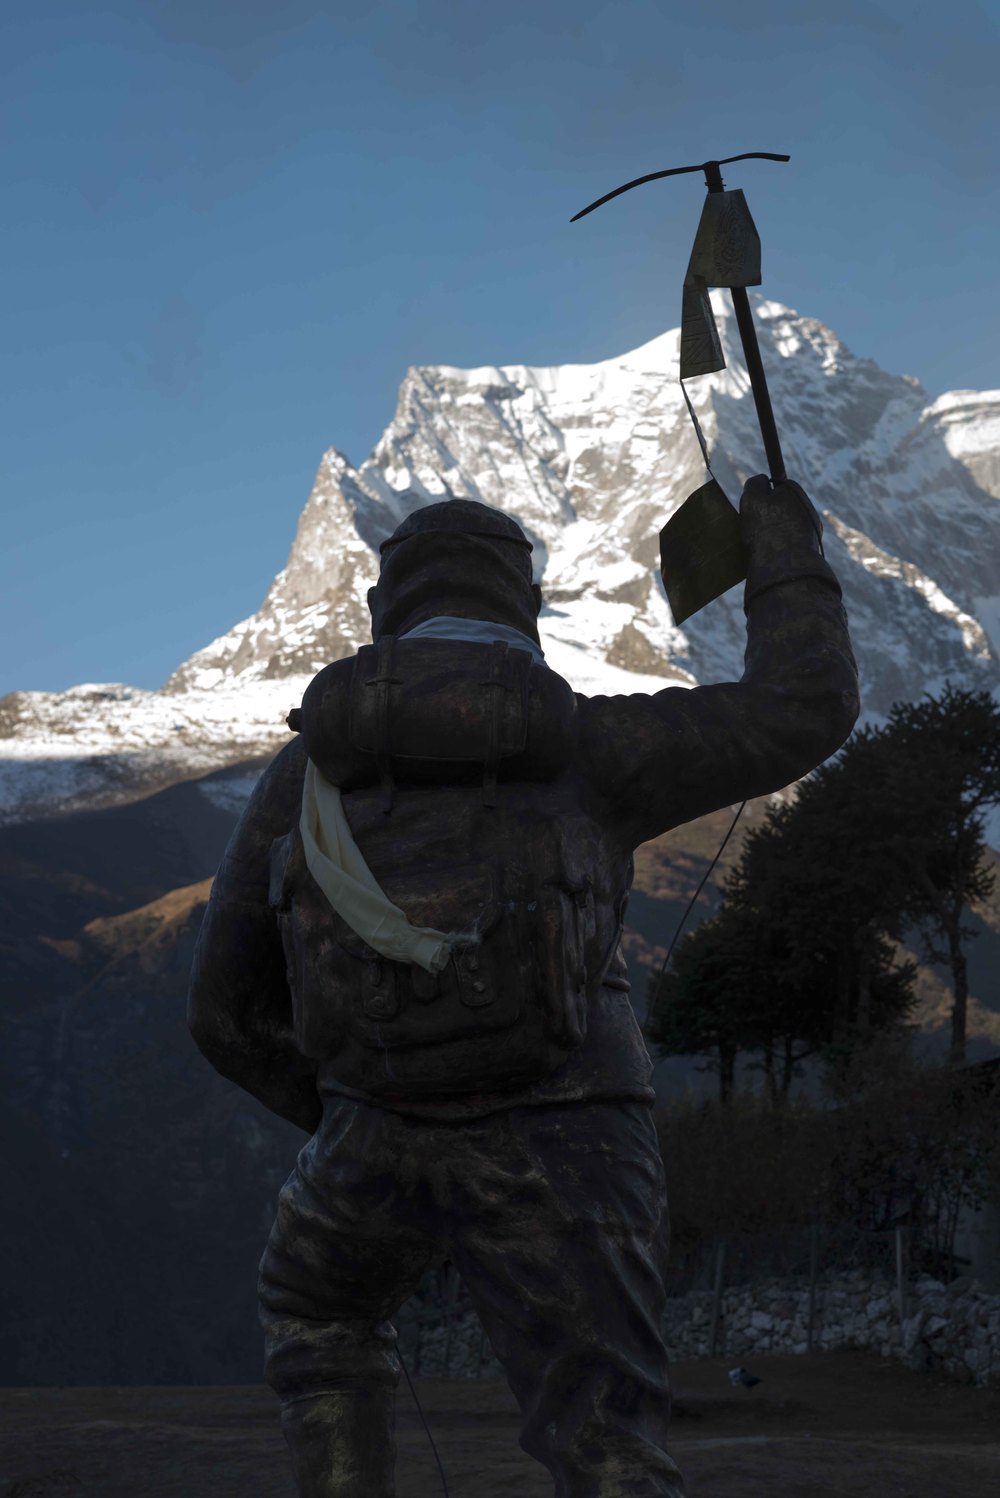 Statue of Sir Edmund Hillary in the foreground.